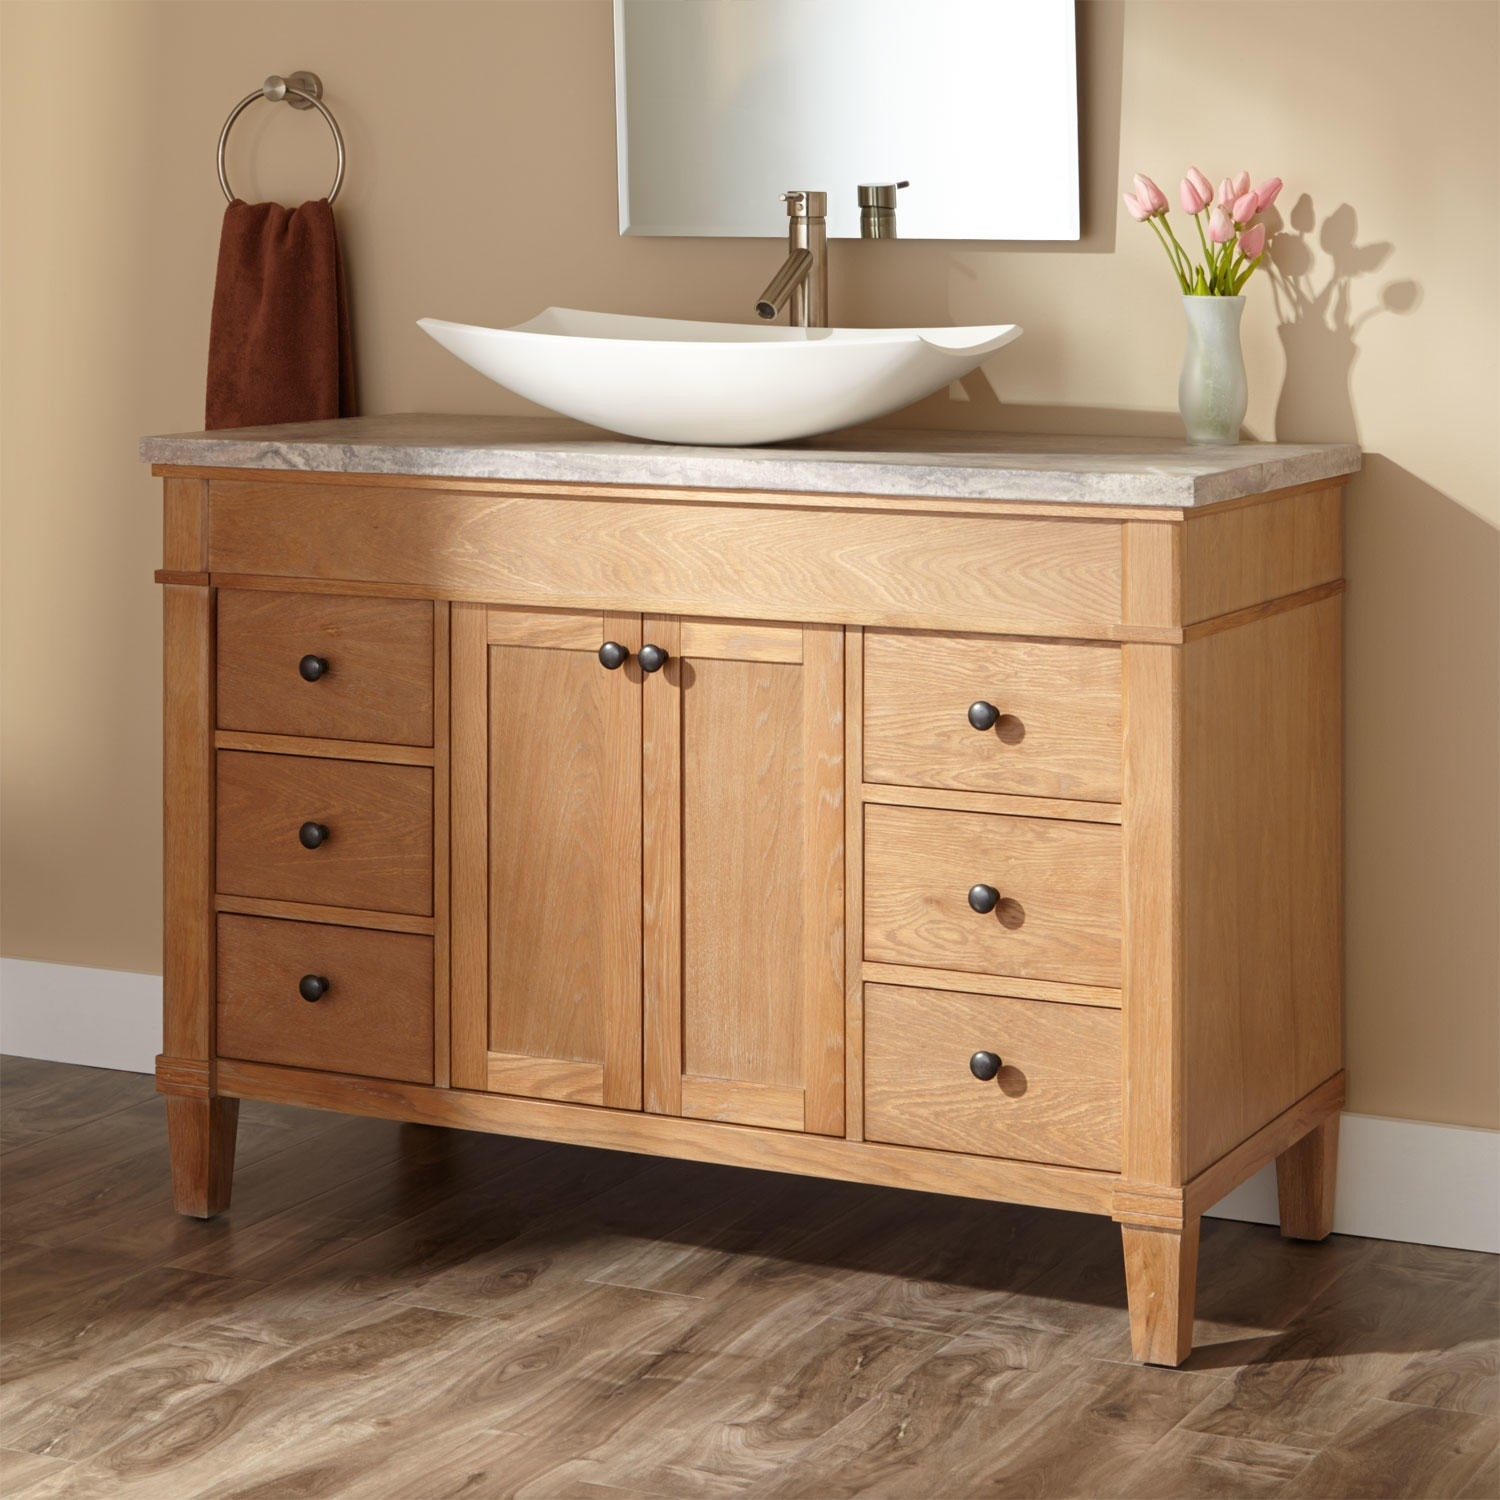 Bathroom Vanity For Vessel Sinks